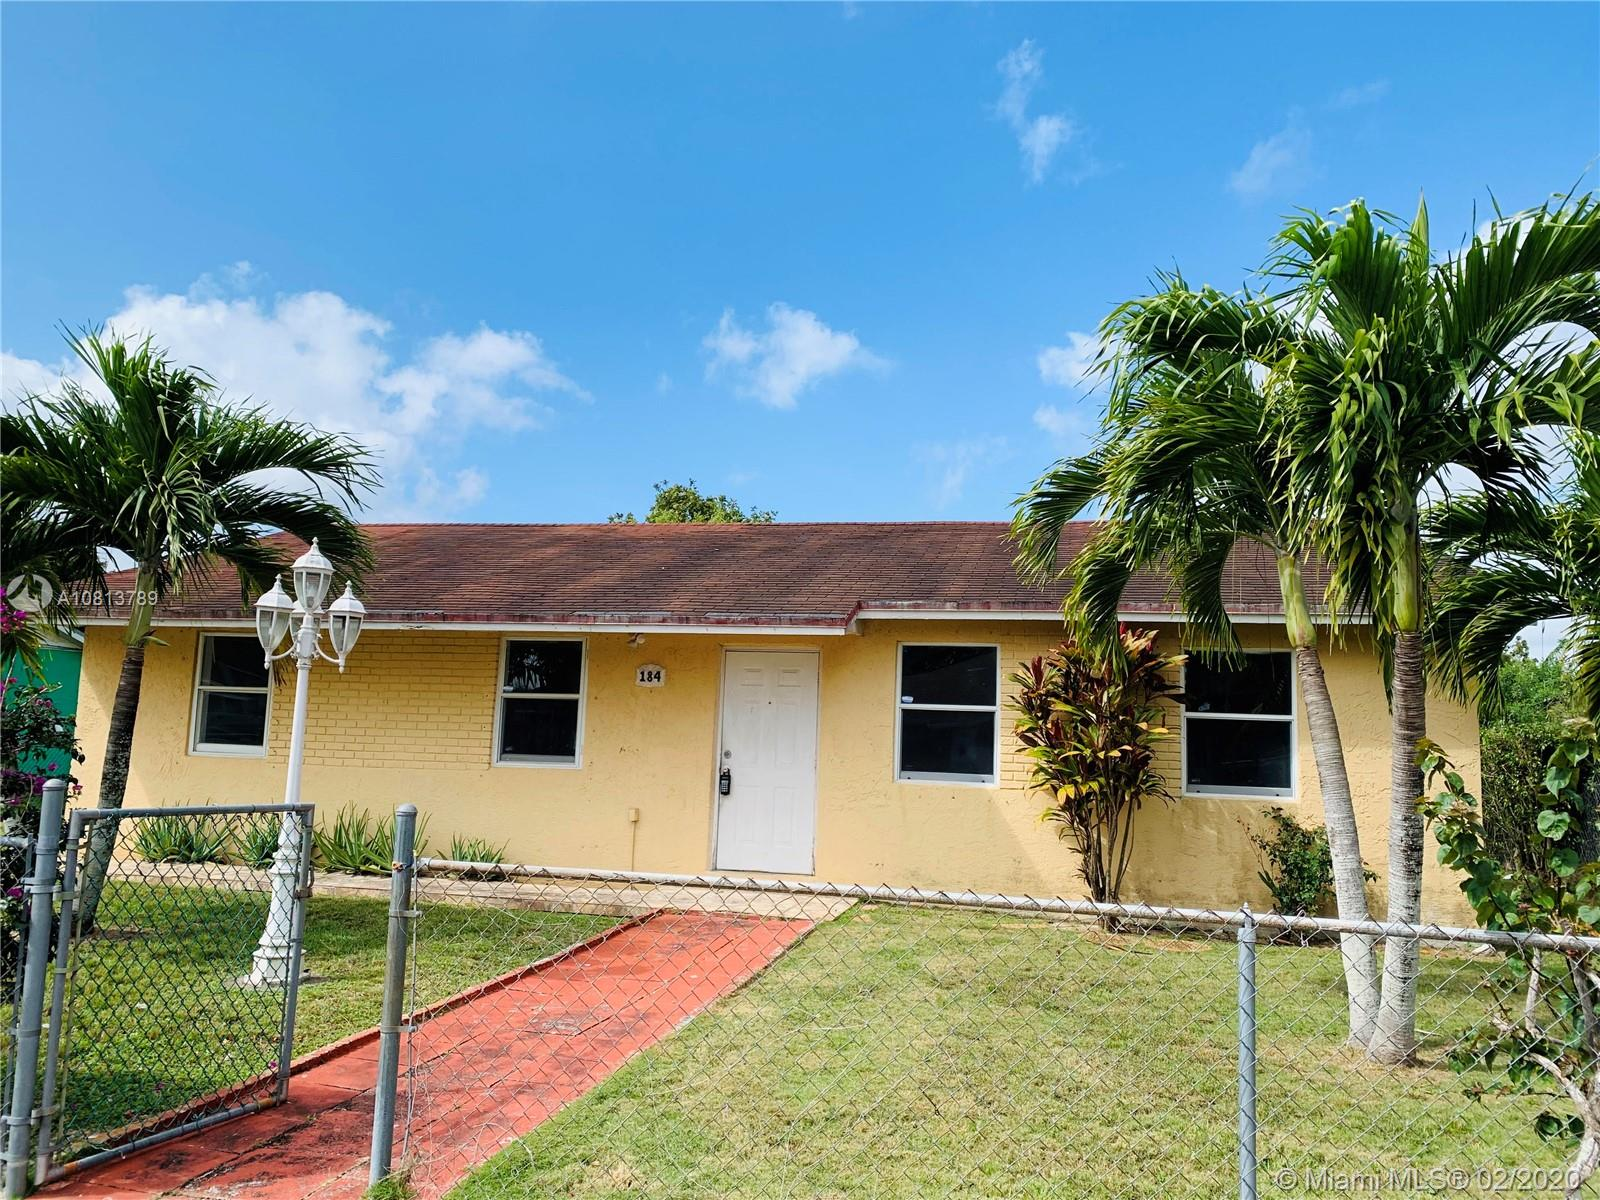 184 SW 16th Ter, Homestead, FL 33030 - Homestead, FL real estate listing